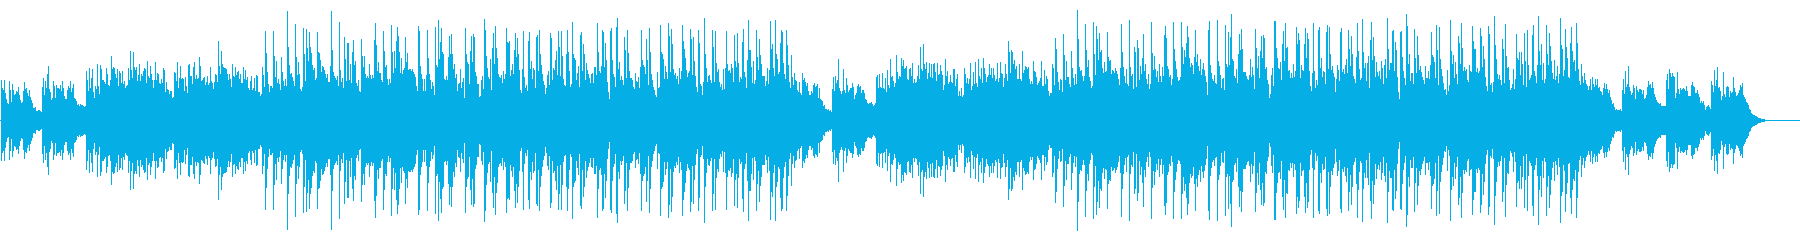 Transparent and flowing BGM's reproduced waveform